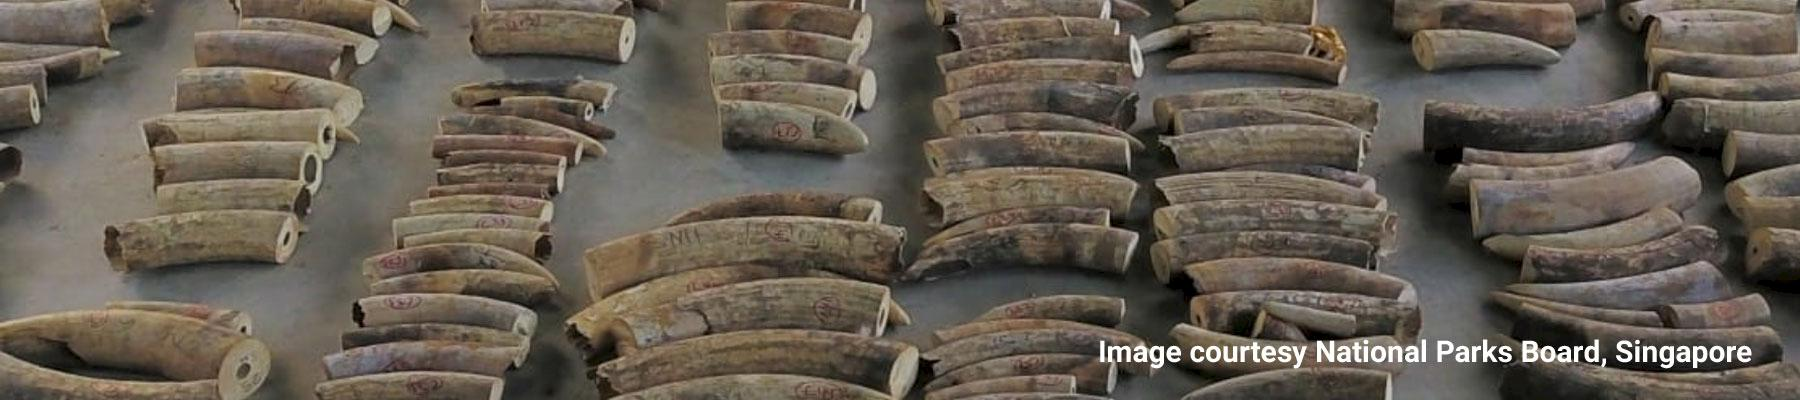 Some of the 8.8 tonnes of African elephant ivory seized in Singapore Image courtesy National Parks Board, Singapore